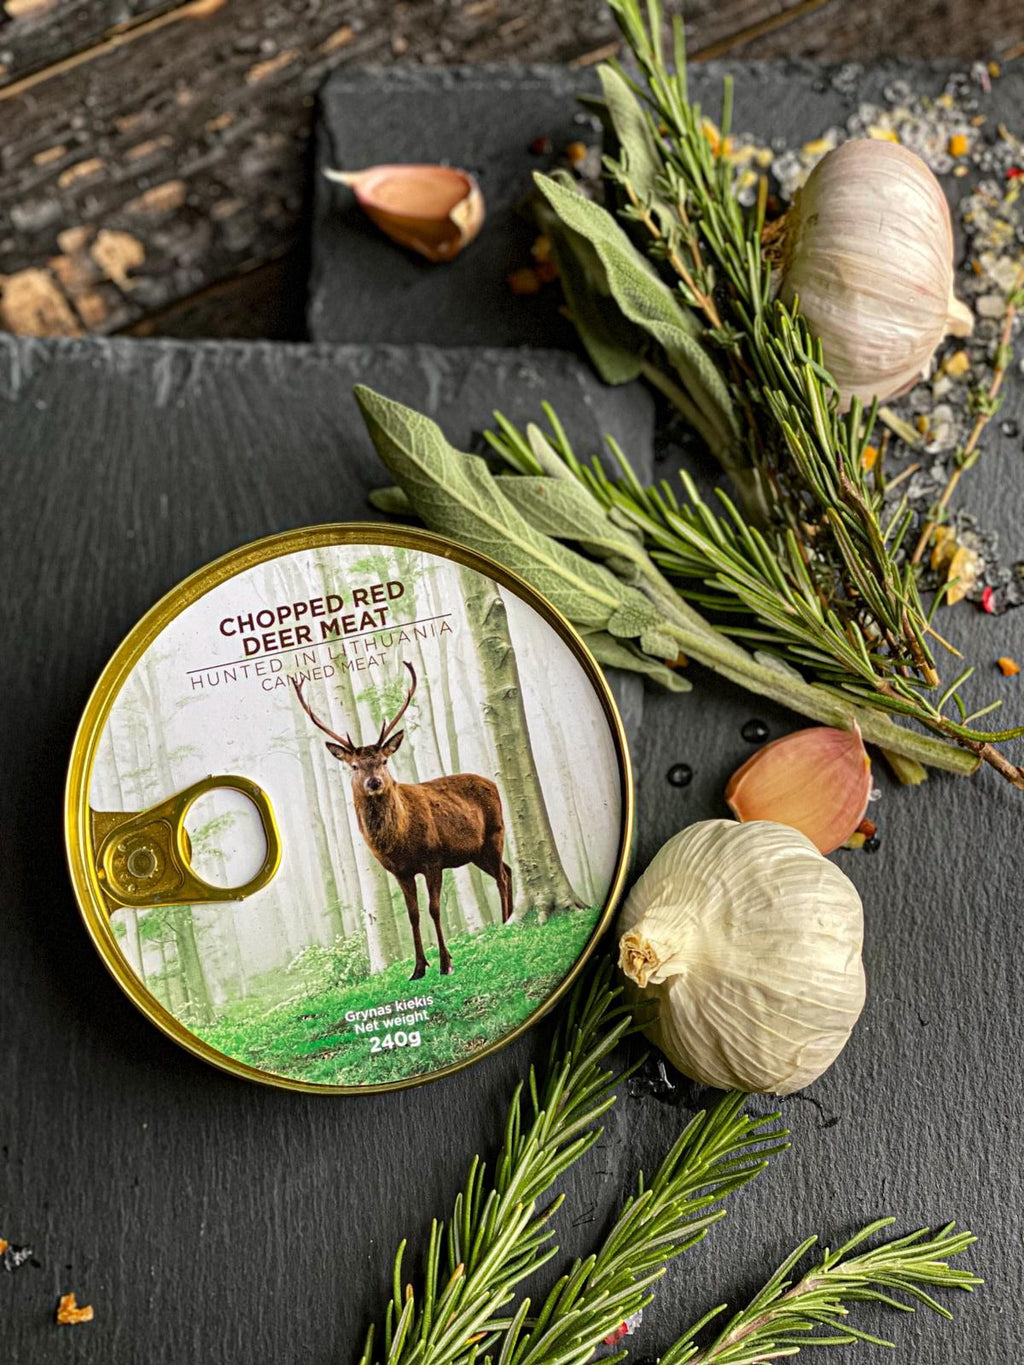 Canned Red Deer Meat - Wild Game Meat